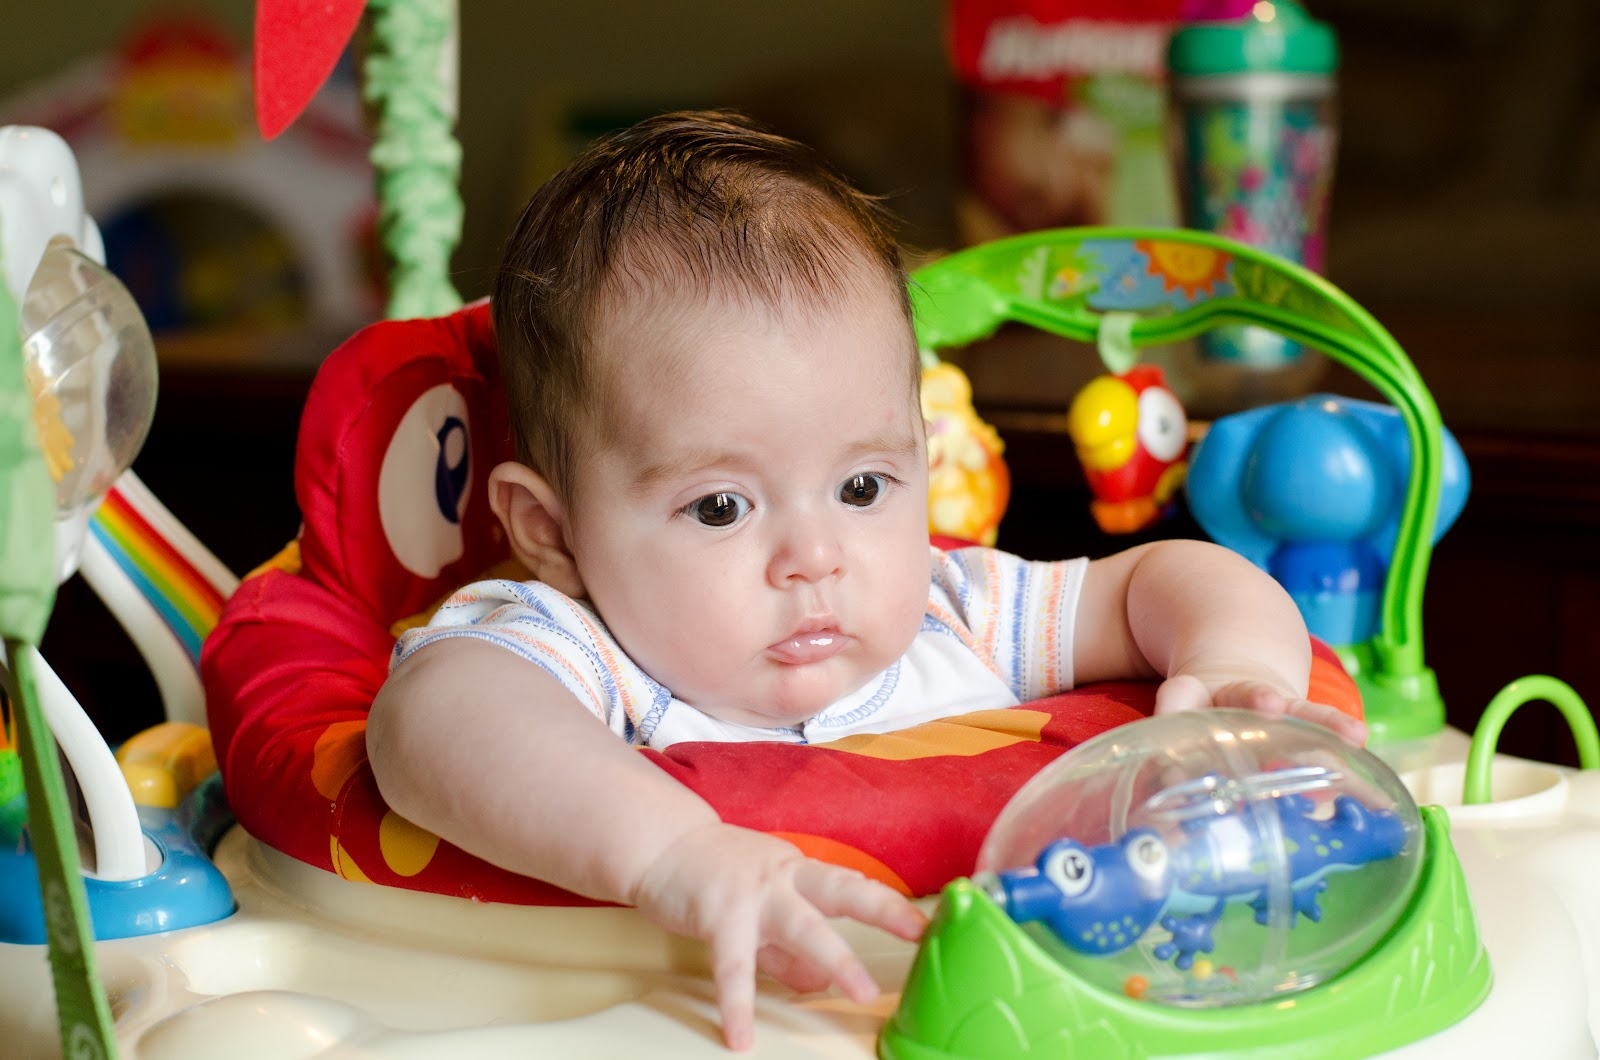 6 Month Old Baby Toys Blessings Miracles Andthoughts In Between Slow Down